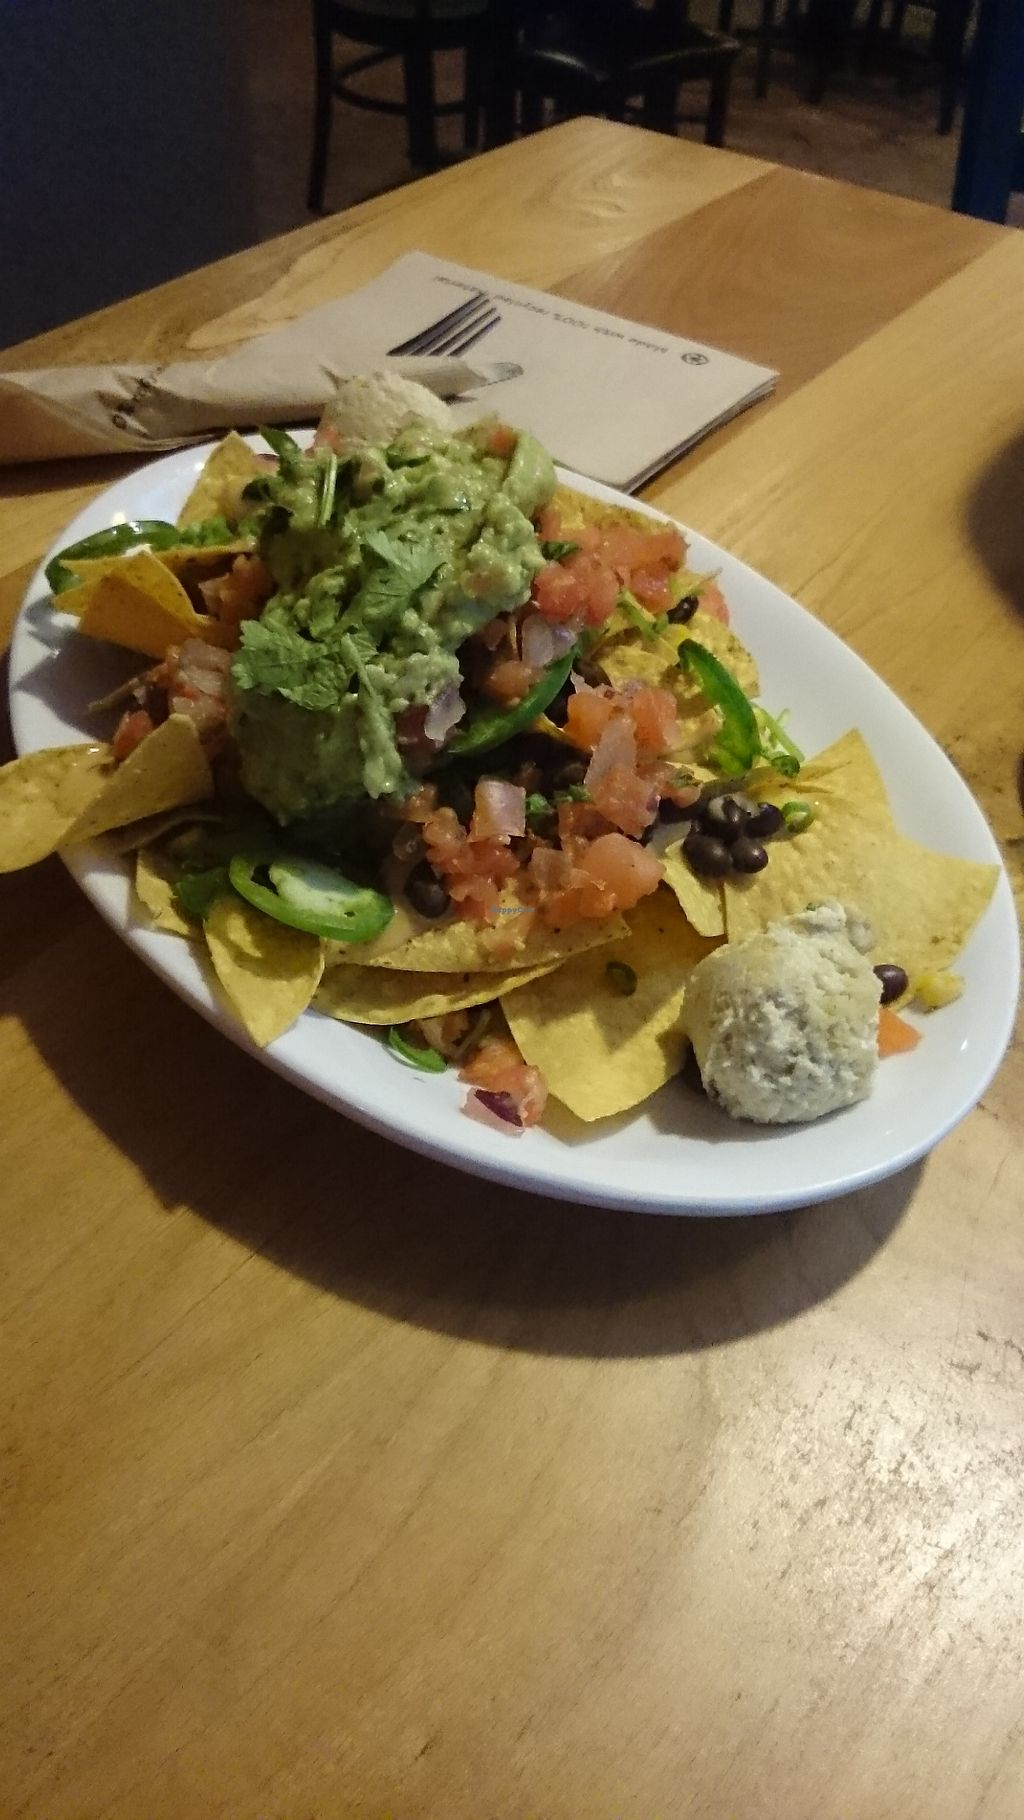 "Photo of Native Foods Cafe - The Loop  by <a href=""/members/profile/ZoraySpielvogel"">ZoraySpielvogel</a> <br/>Native nachos  <br/> January 28, 2018  - <a href='/contact/abuse/image/27913/352040'>Report</a>"